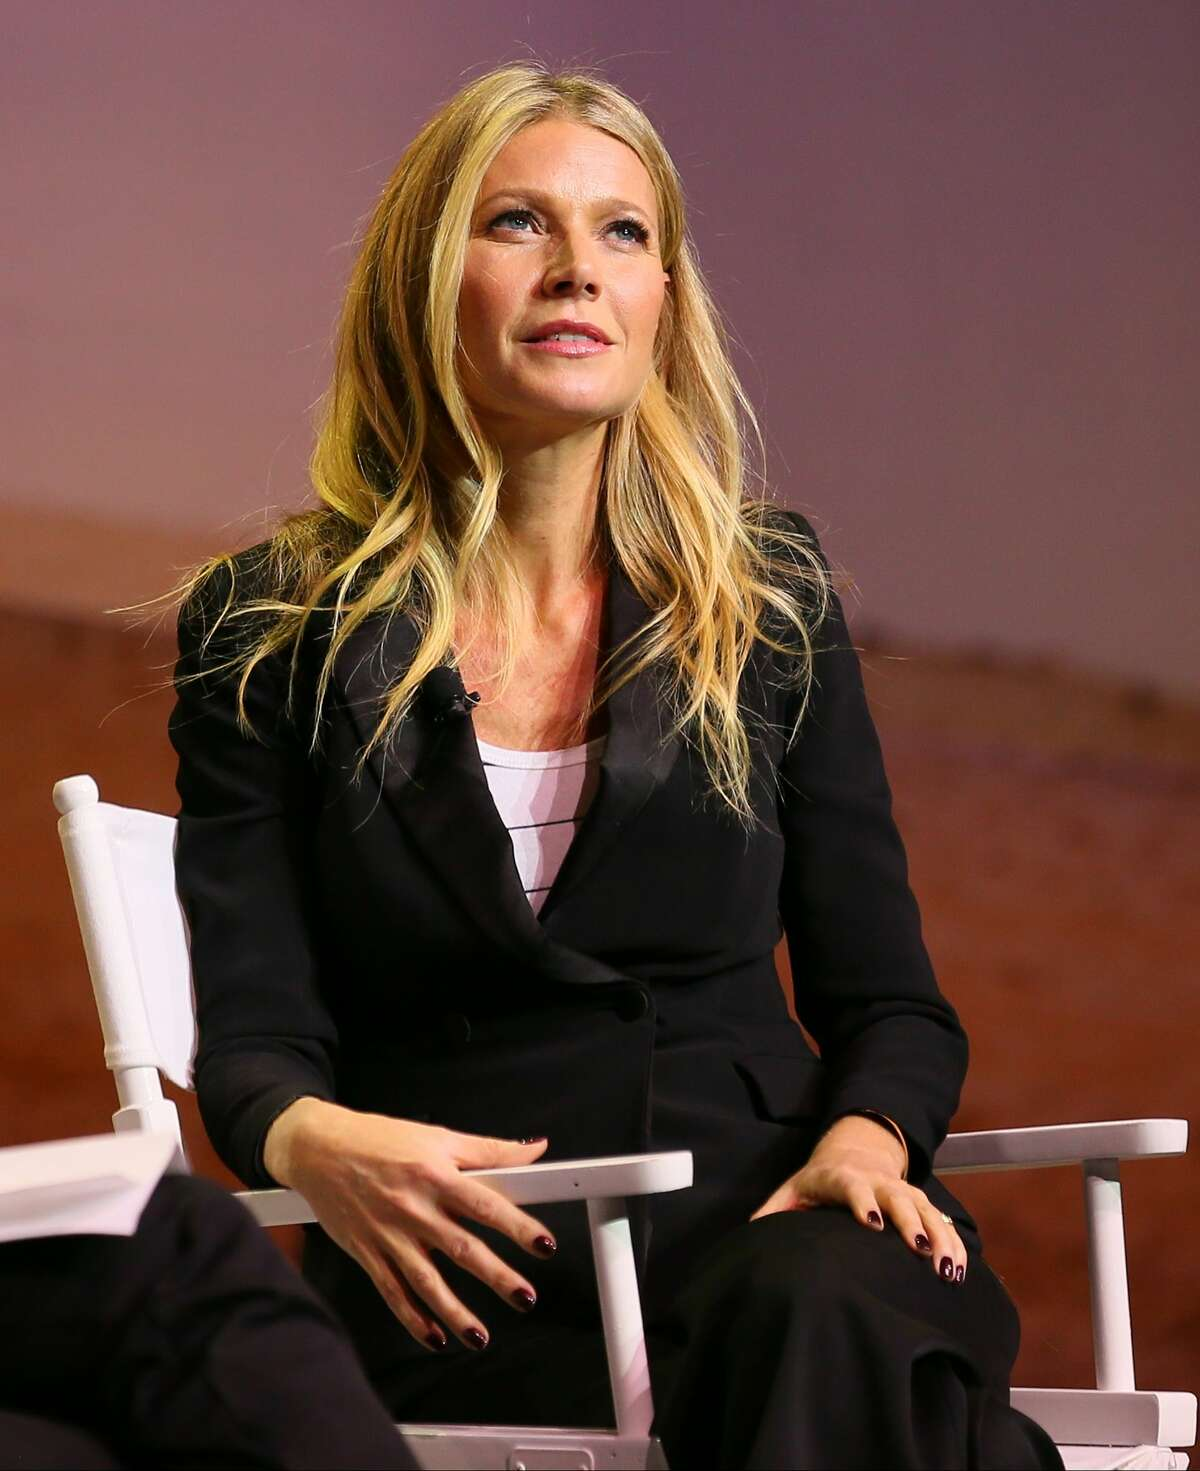 Gwyneth Paltrow, actress & founder of Goop, speaks onstage at the 3rd Annual Airbnb Open Spotlight at the Los Angeles Theatre on November 19, 2016 in Los Angeles, California. Paltrow was seen at various local restaurants in Marin over the weekend.